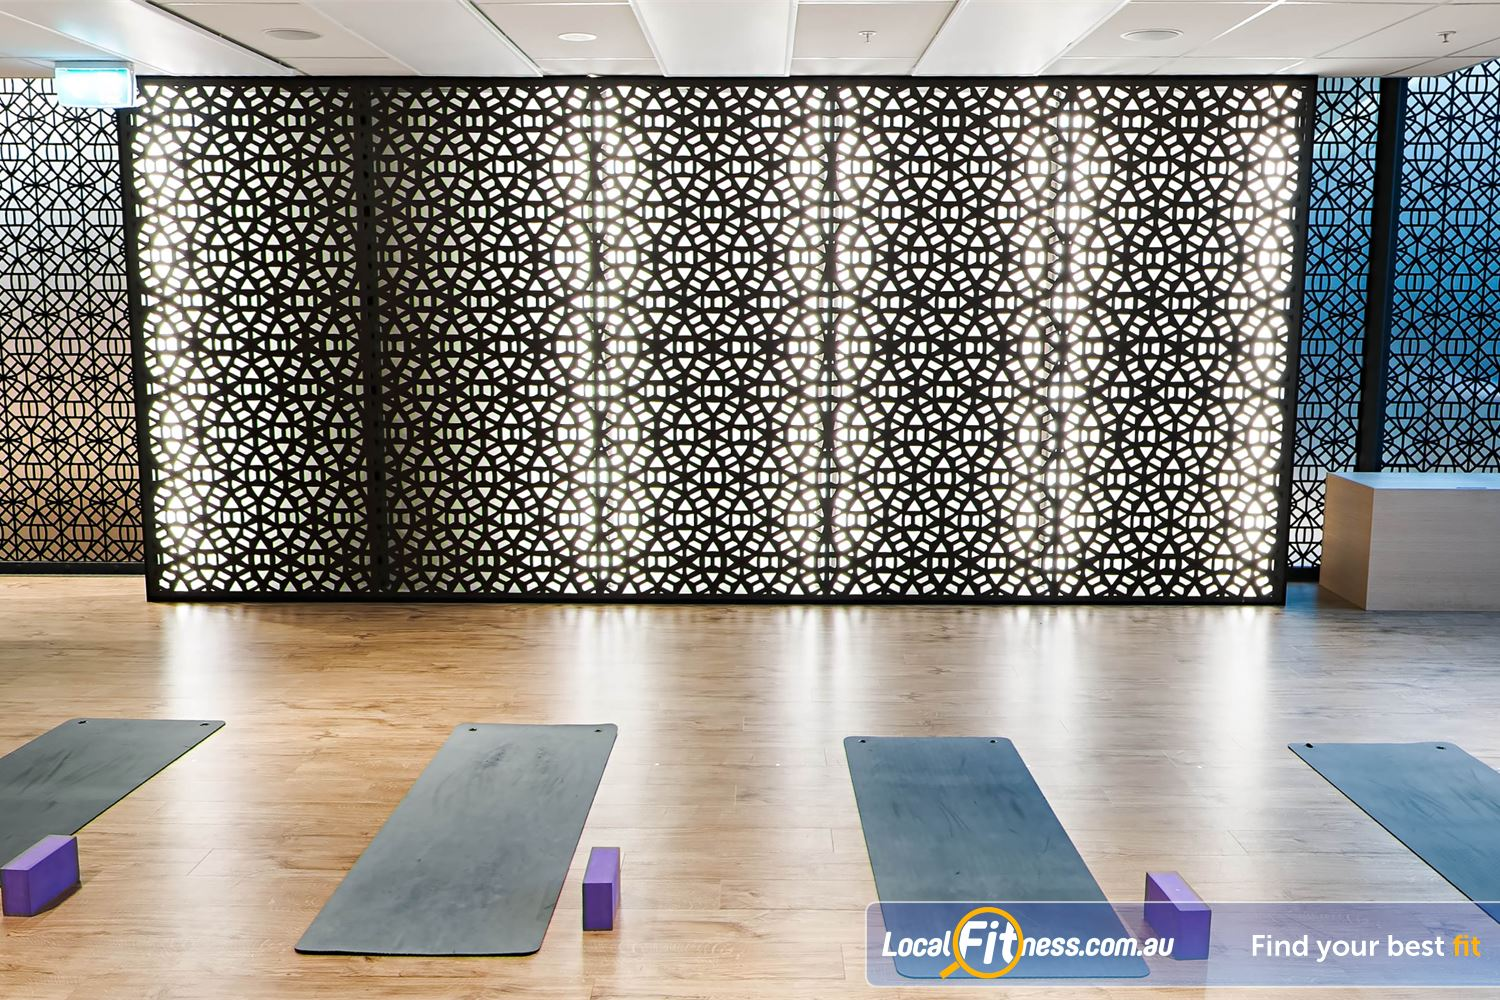 Fitness First Platinum Park St Sydney Dedicated mind and body studio for our range of Sydney Yoga classes.